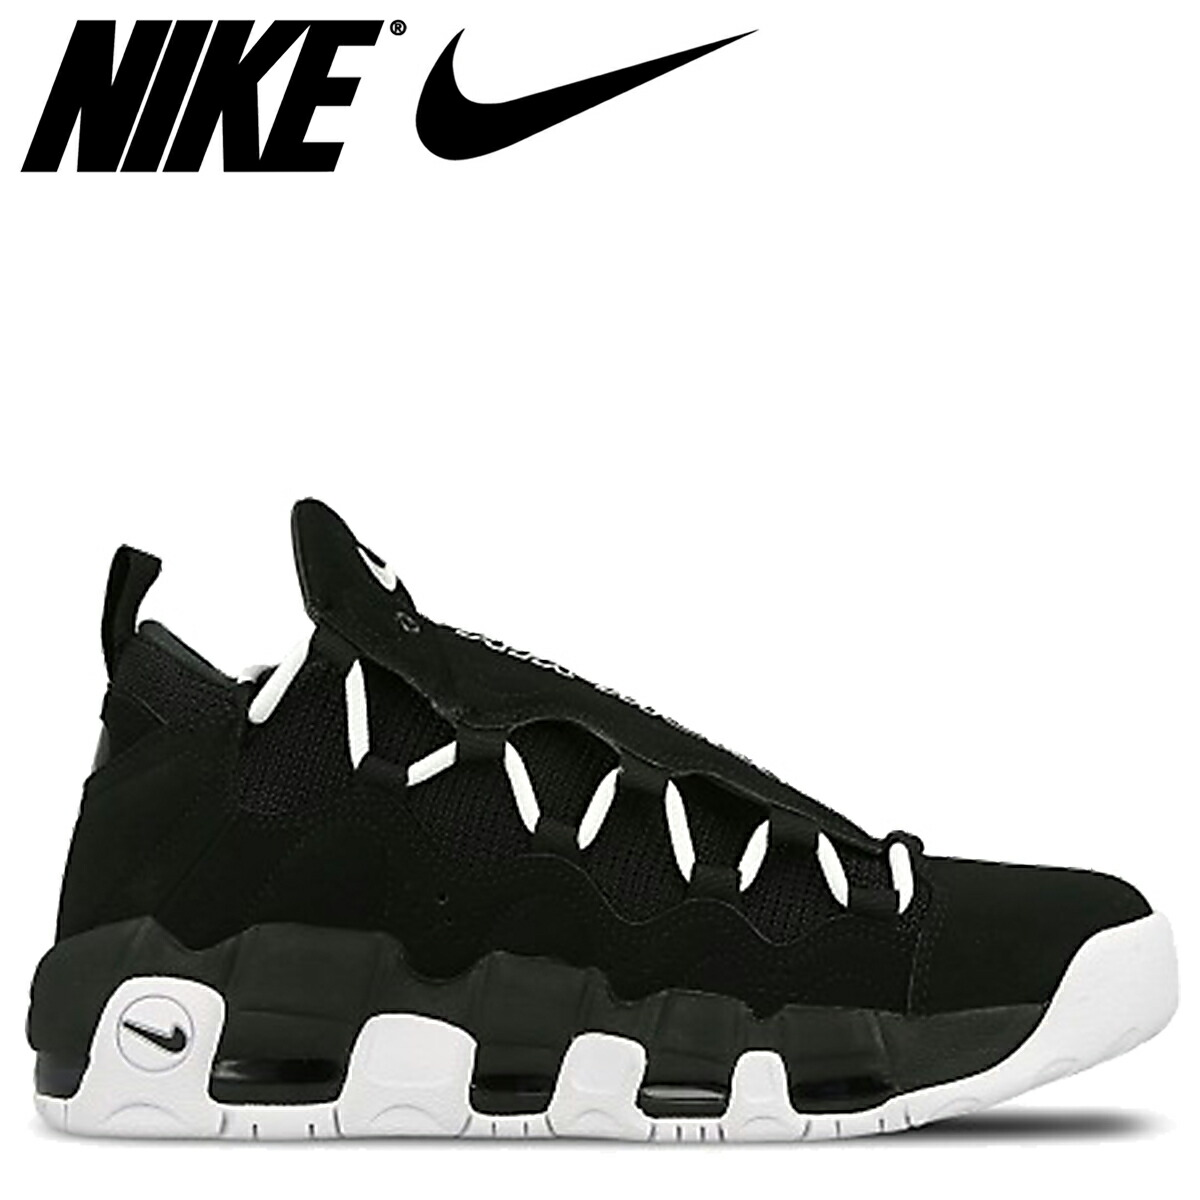 979dbb79cecf85 ALLSPORTS  NIKE AIR MORE MONEY BOLD CURRENCY Nike air more money ...